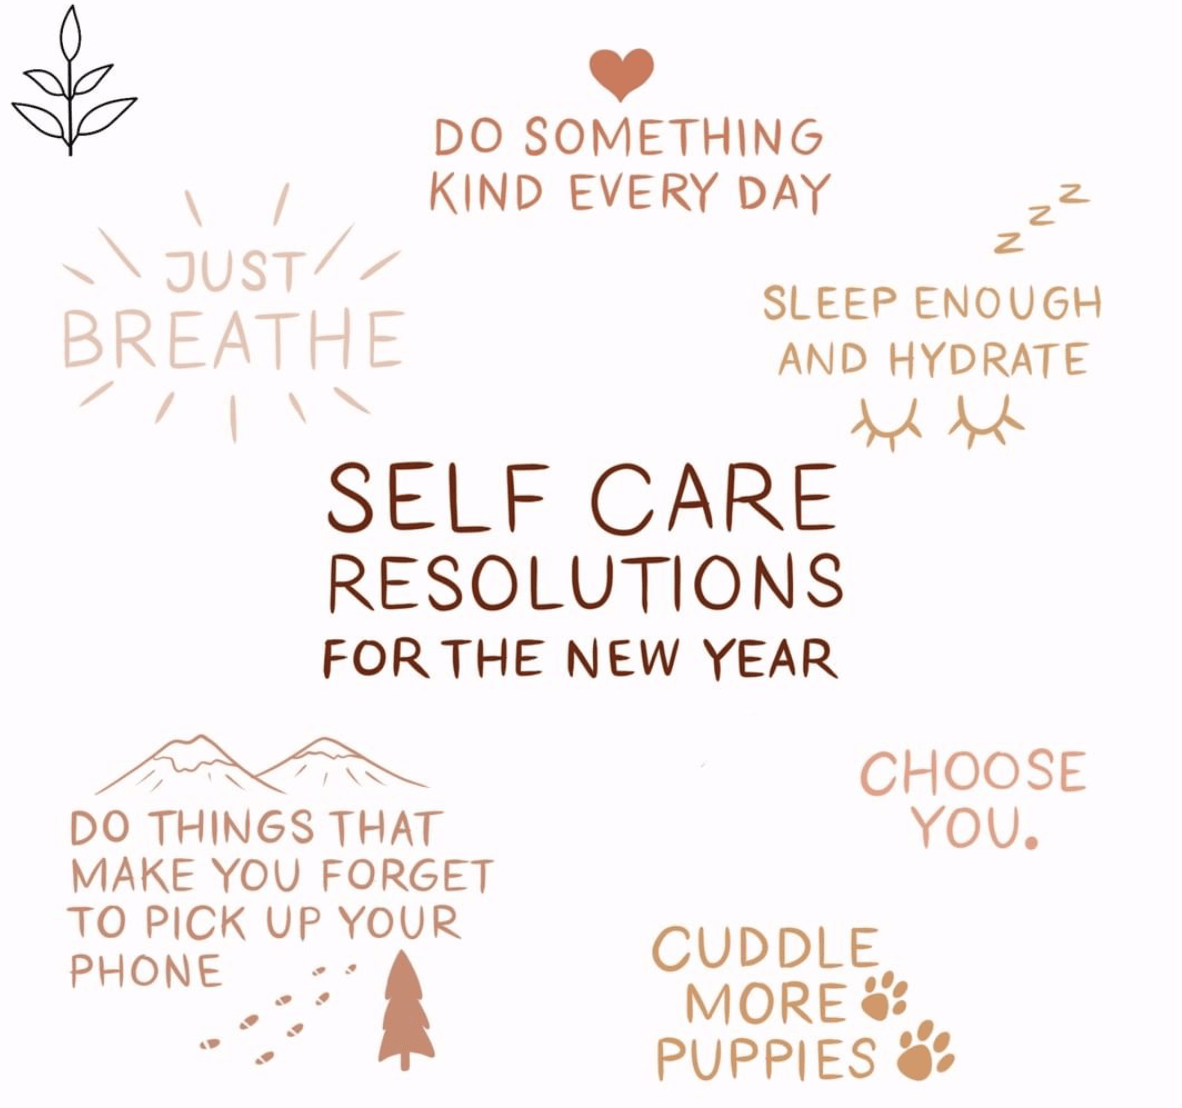 [image] Self-care